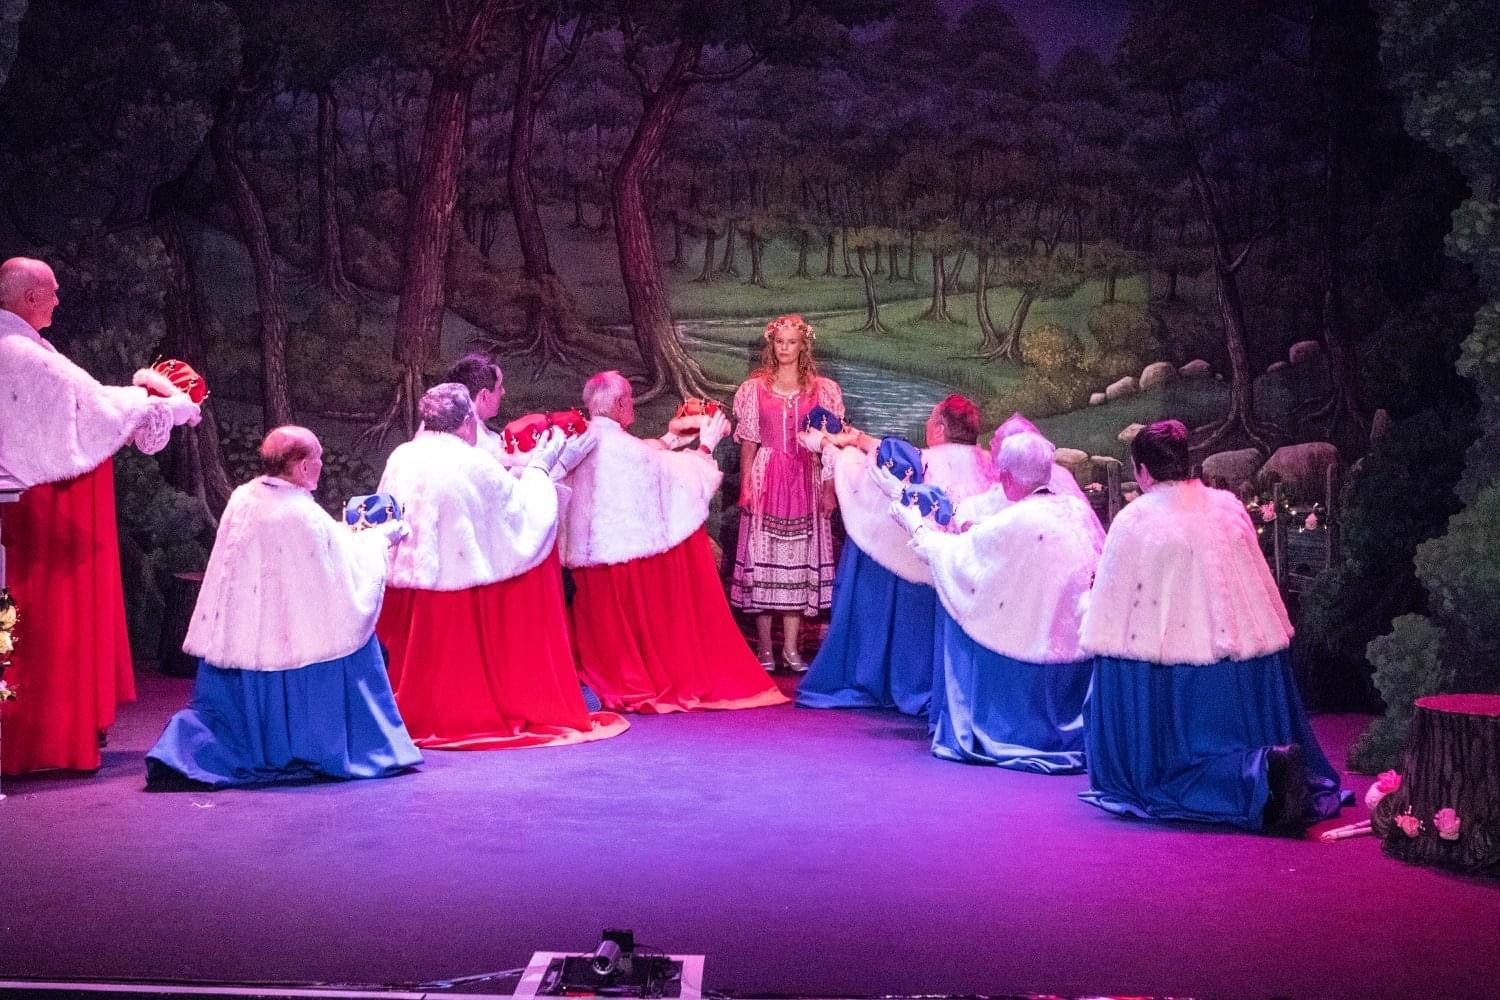 Iolanthe 2019 - The Lords with Phyllis